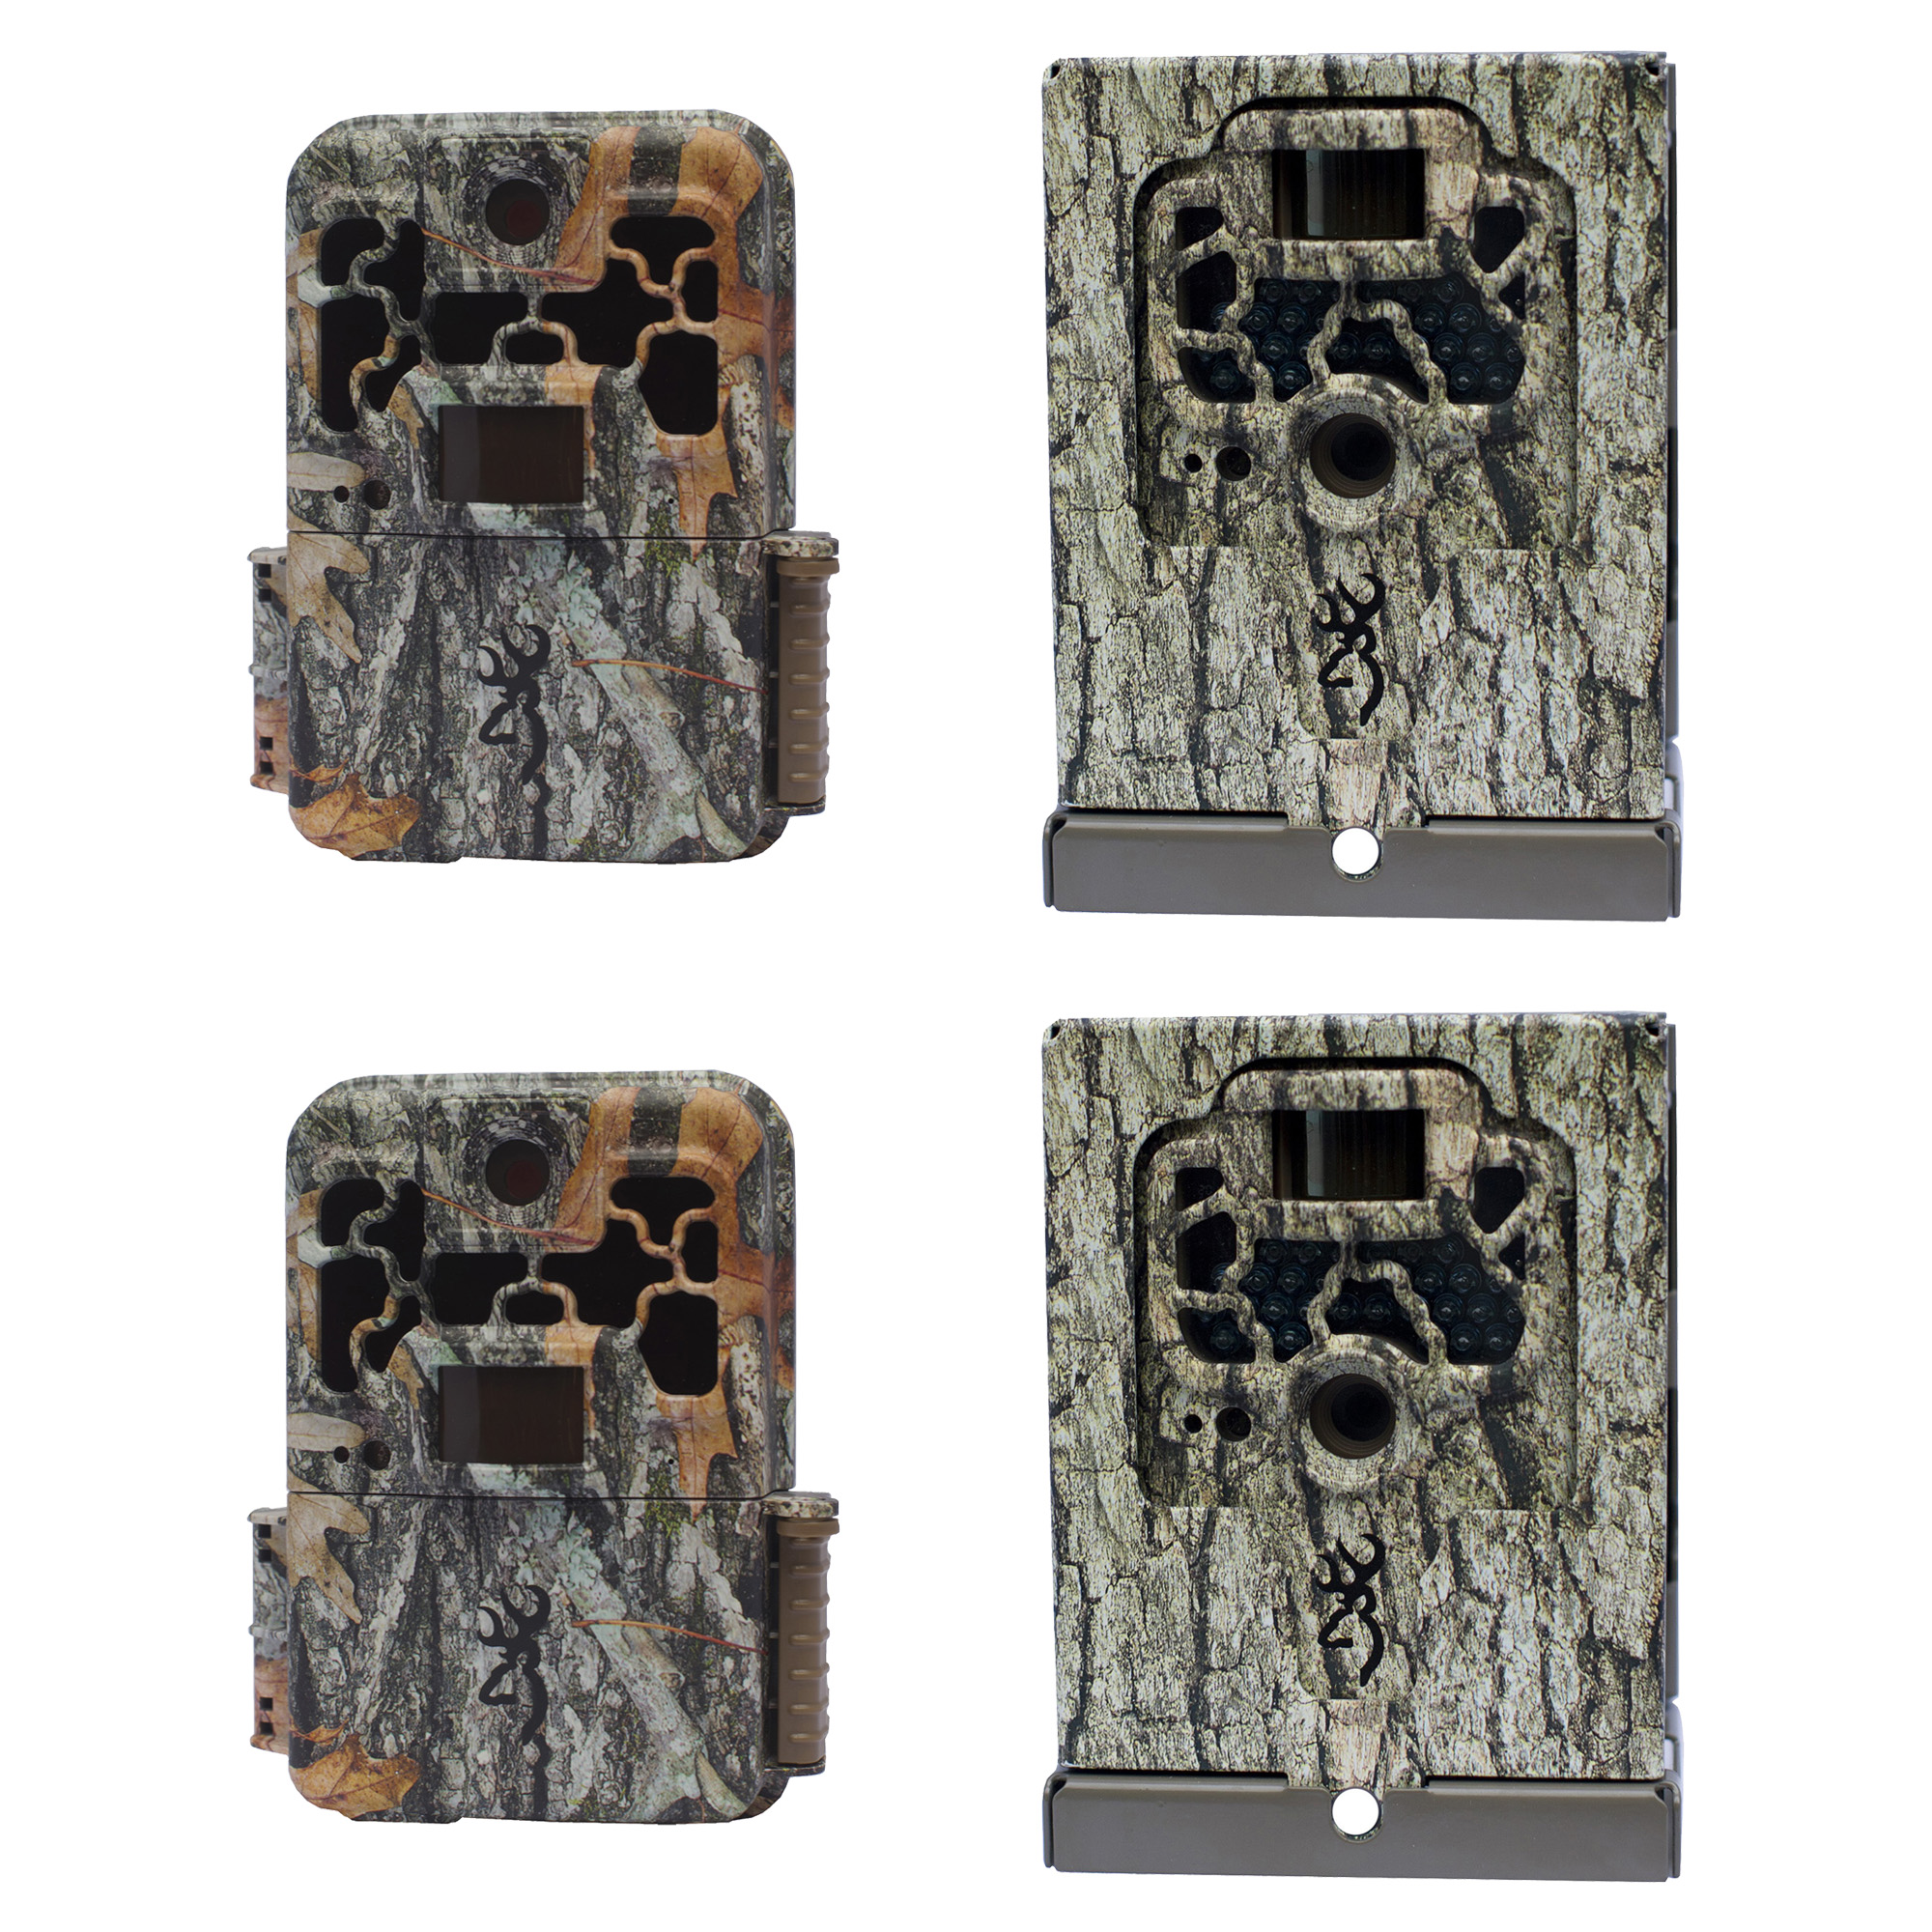 Click here to buy Browning Trail Cameras SpecOps FHD Platinum Game Camera, 2 Pack + Security Cases by Browning Trail Cameras.